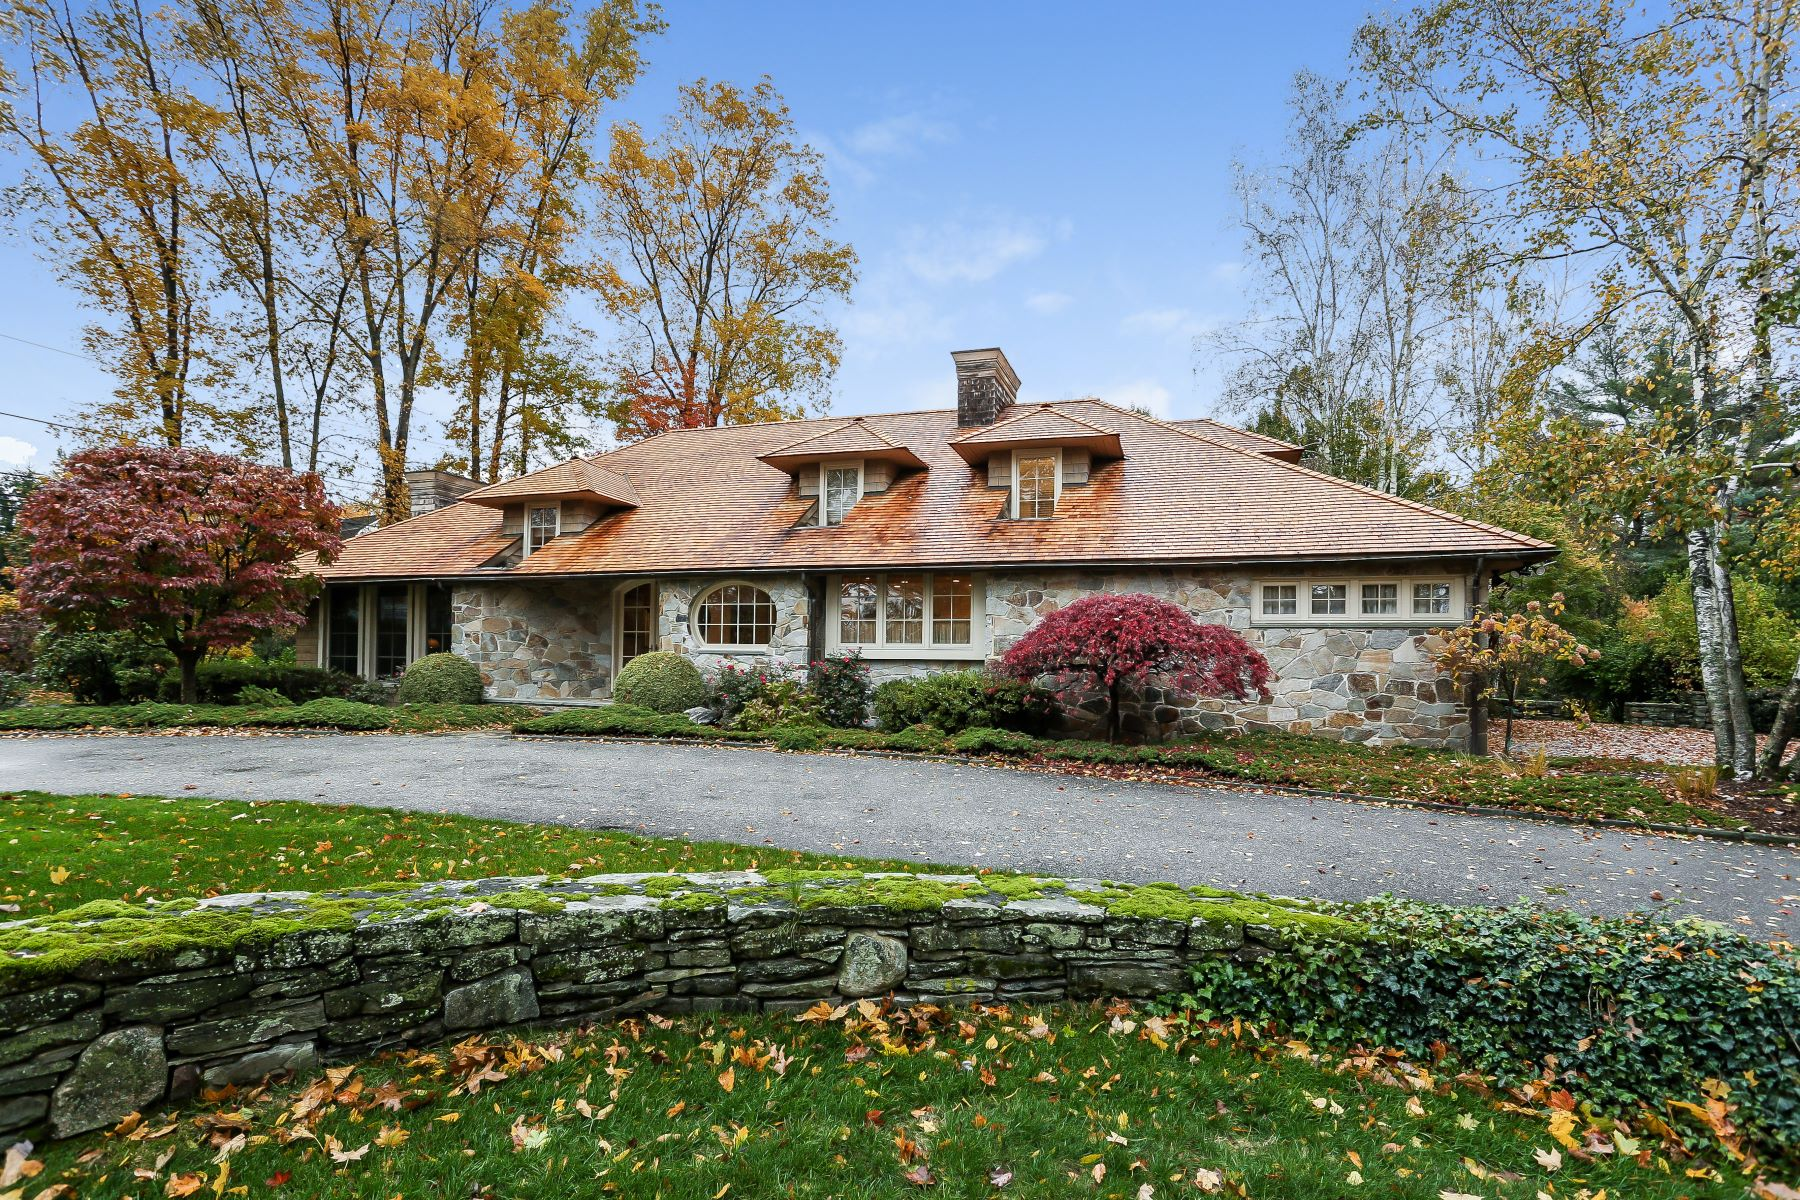 Single Family Homes for Sale at Beautiful English Country Home 991 Pequot Avenue, Fairfield, Connecticut 06890 United States